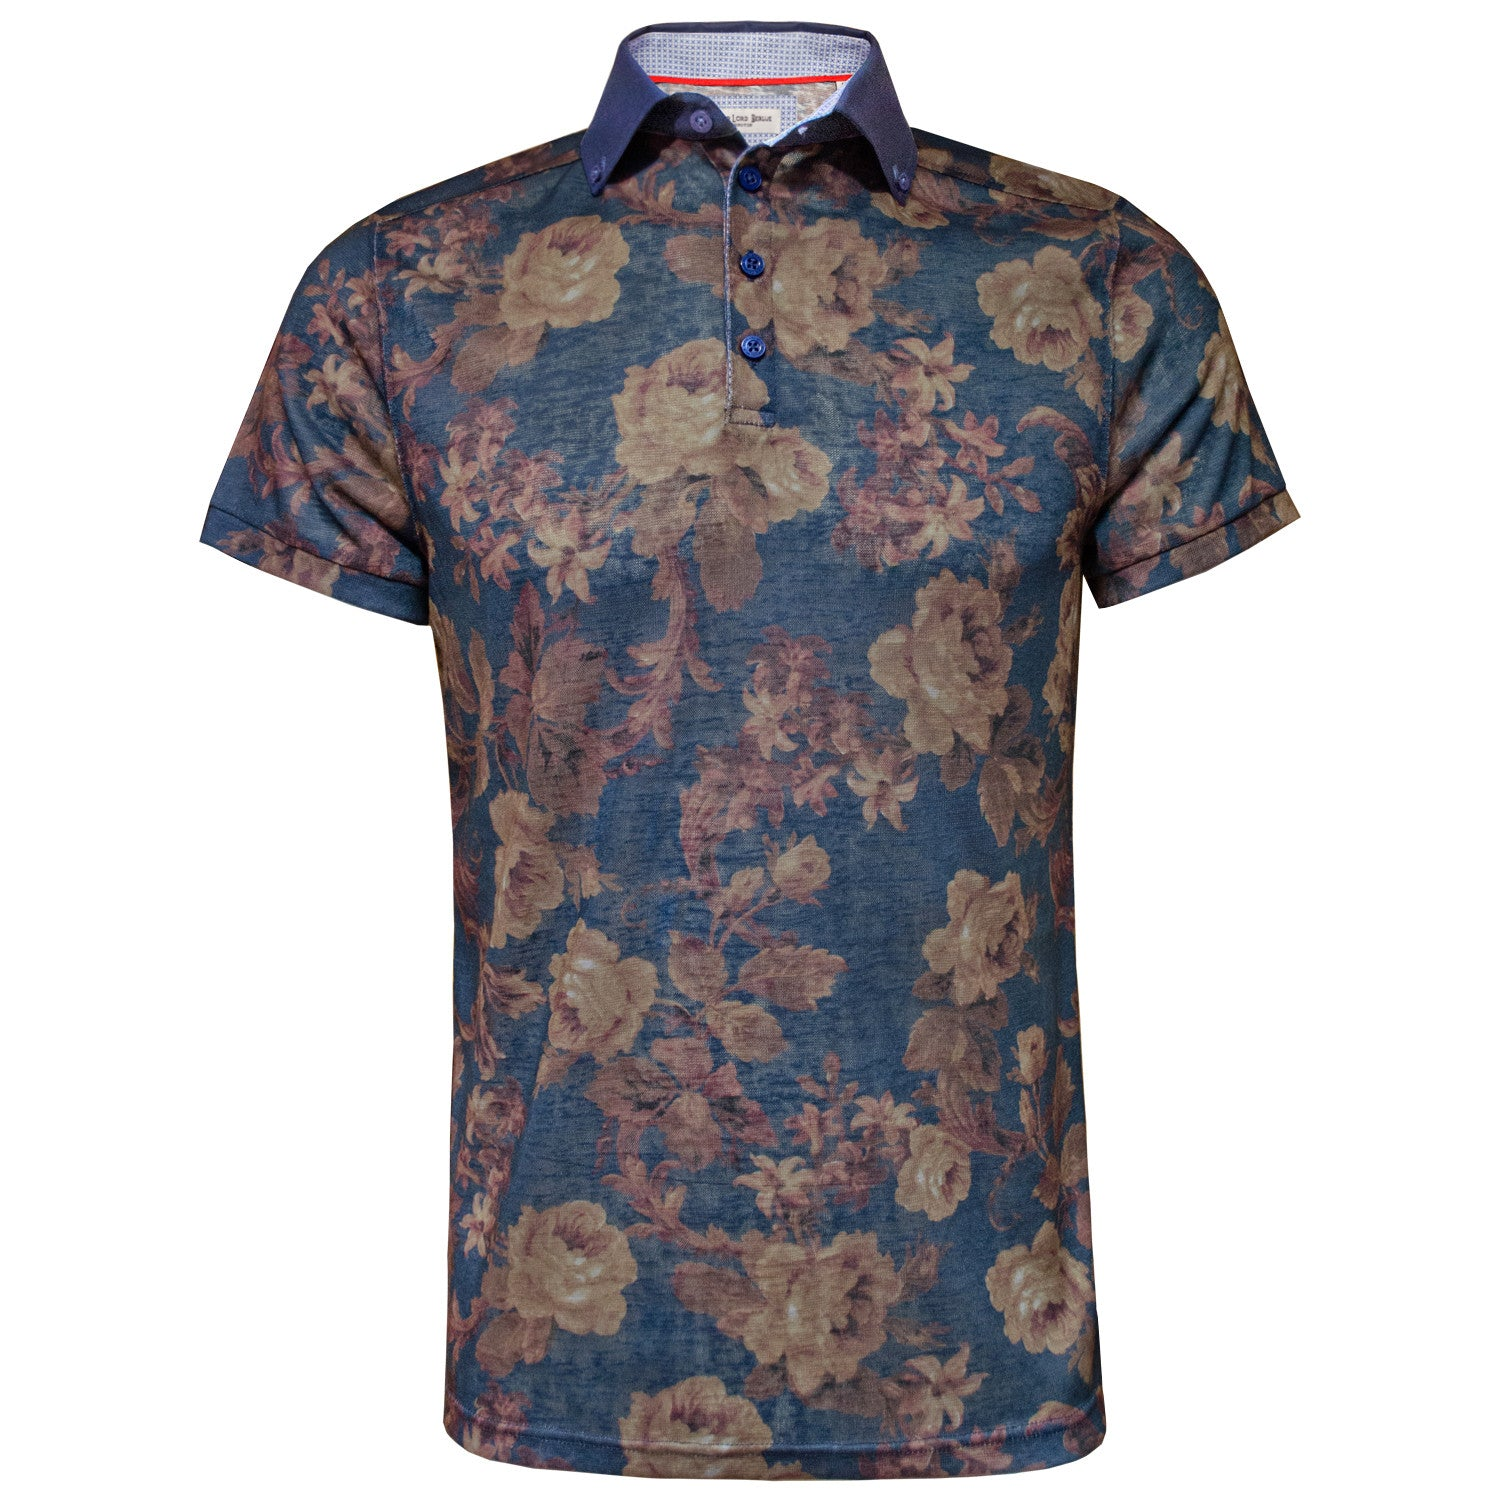 MAINS - Navy Floral